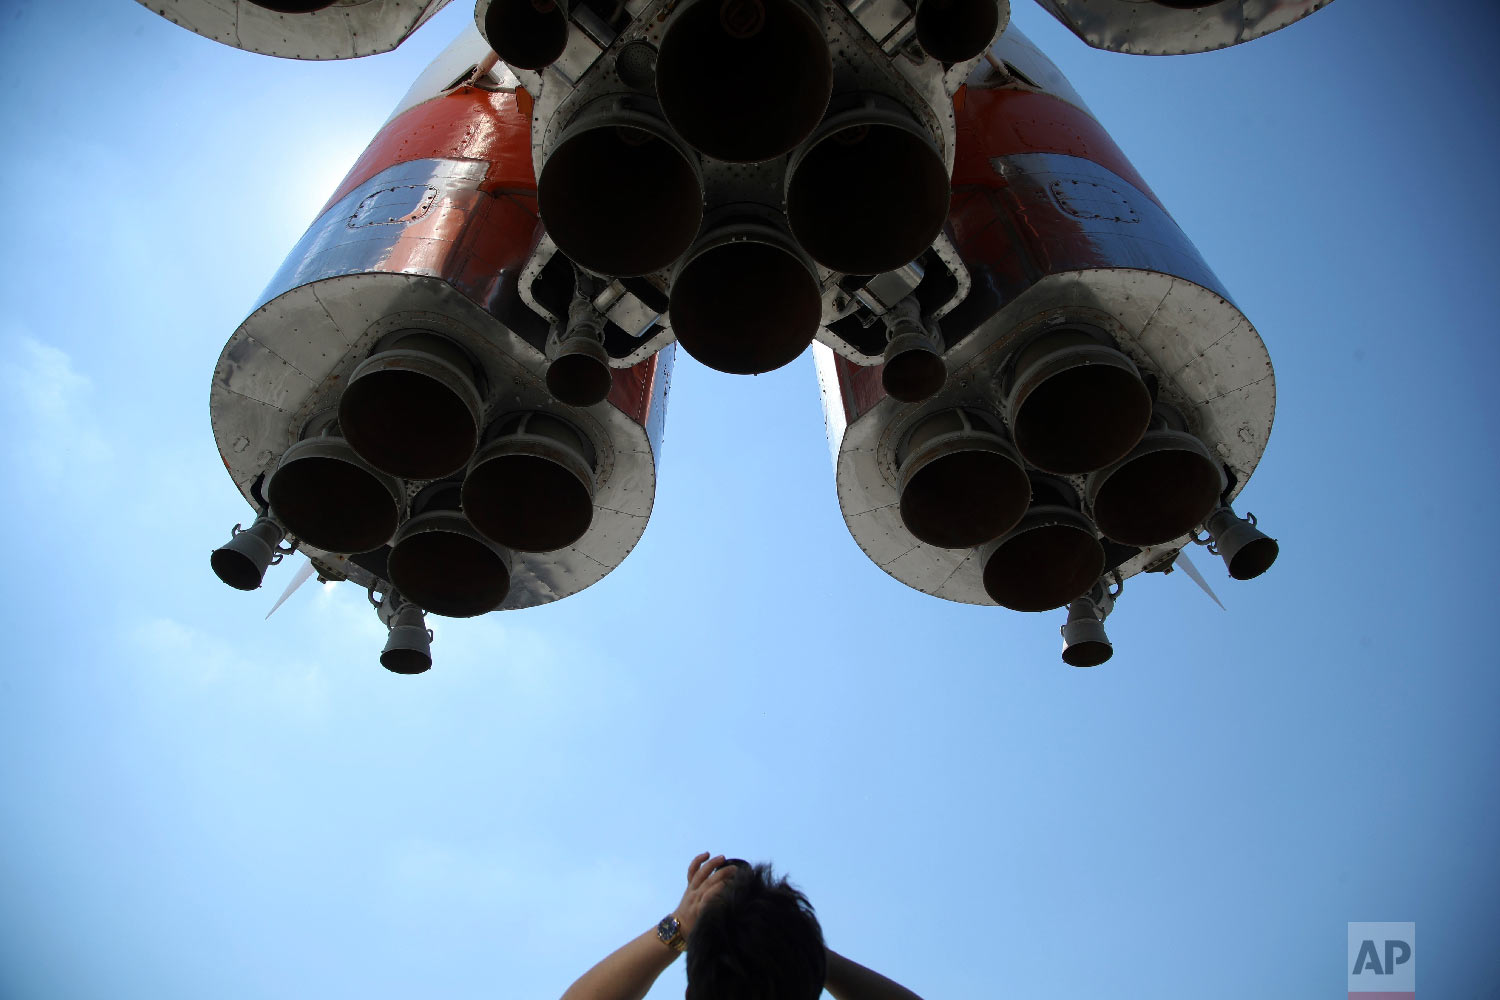 A tourist takes a photograph of a real Vostok rocket outside the Space Museum during the 2018 soccer World Cup in Samara, Russia on Sunday, July 8, 2018. The southeastern city of Russia is known for the production of aerospace launch vehicles, satellites and various space services. (AP Photo/Thanassis Stavrakis)